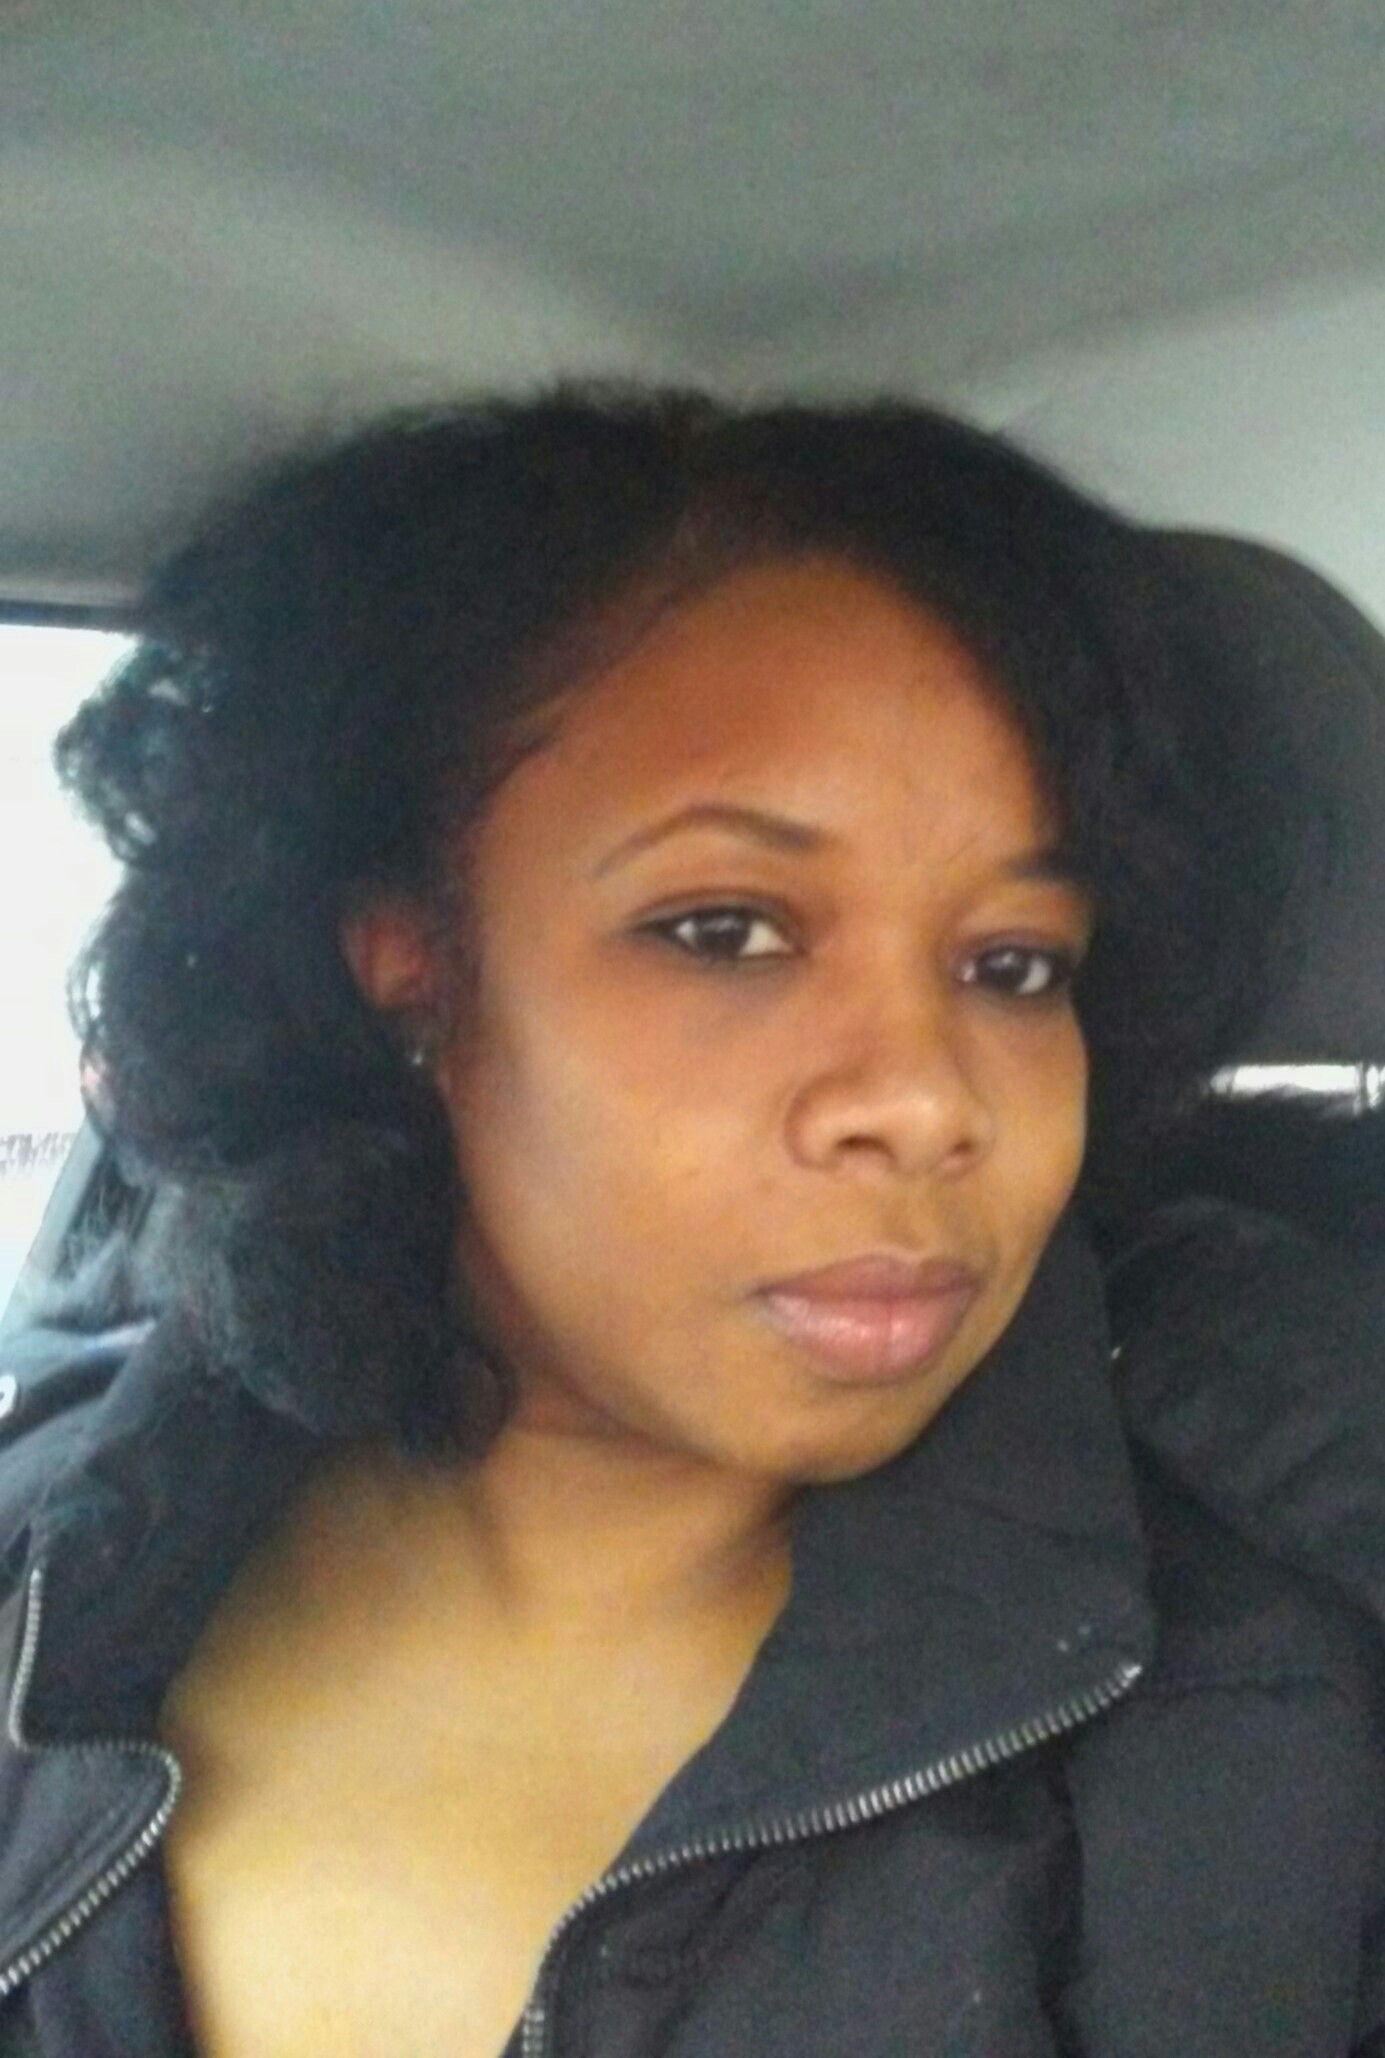 No blow dryer no flat iron  just roller set on natural hair  hair